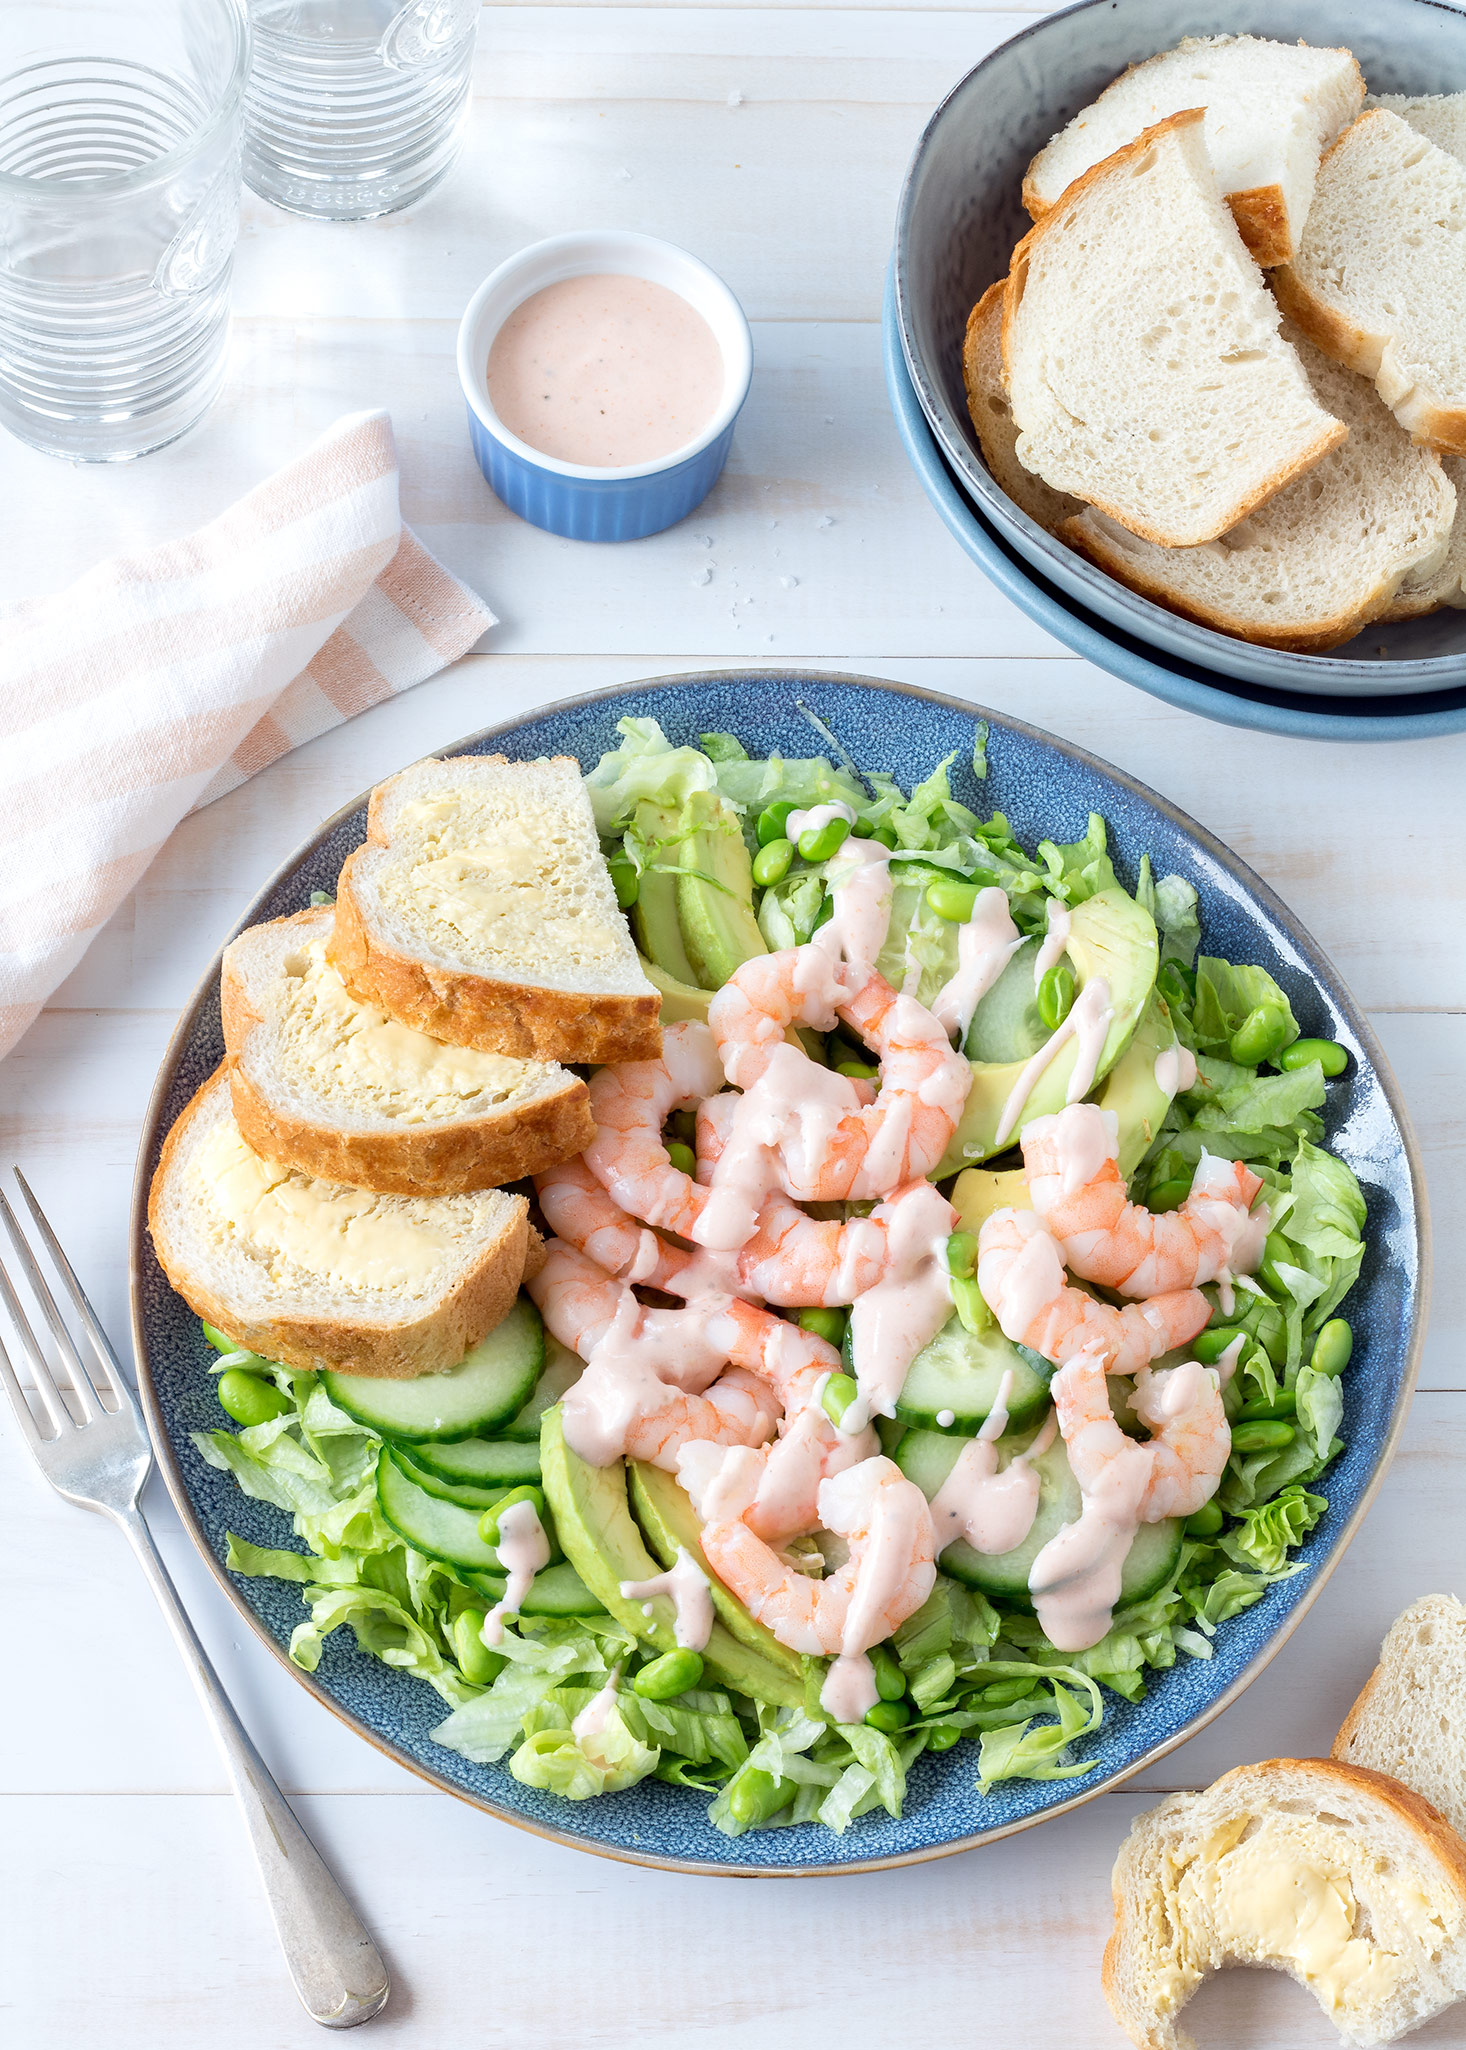 Prawn cocktail salads are a fresh, light and summery meal. Perfect for the warmer months as there's no need to turn the oven on. Ready in just 15 minutes too!